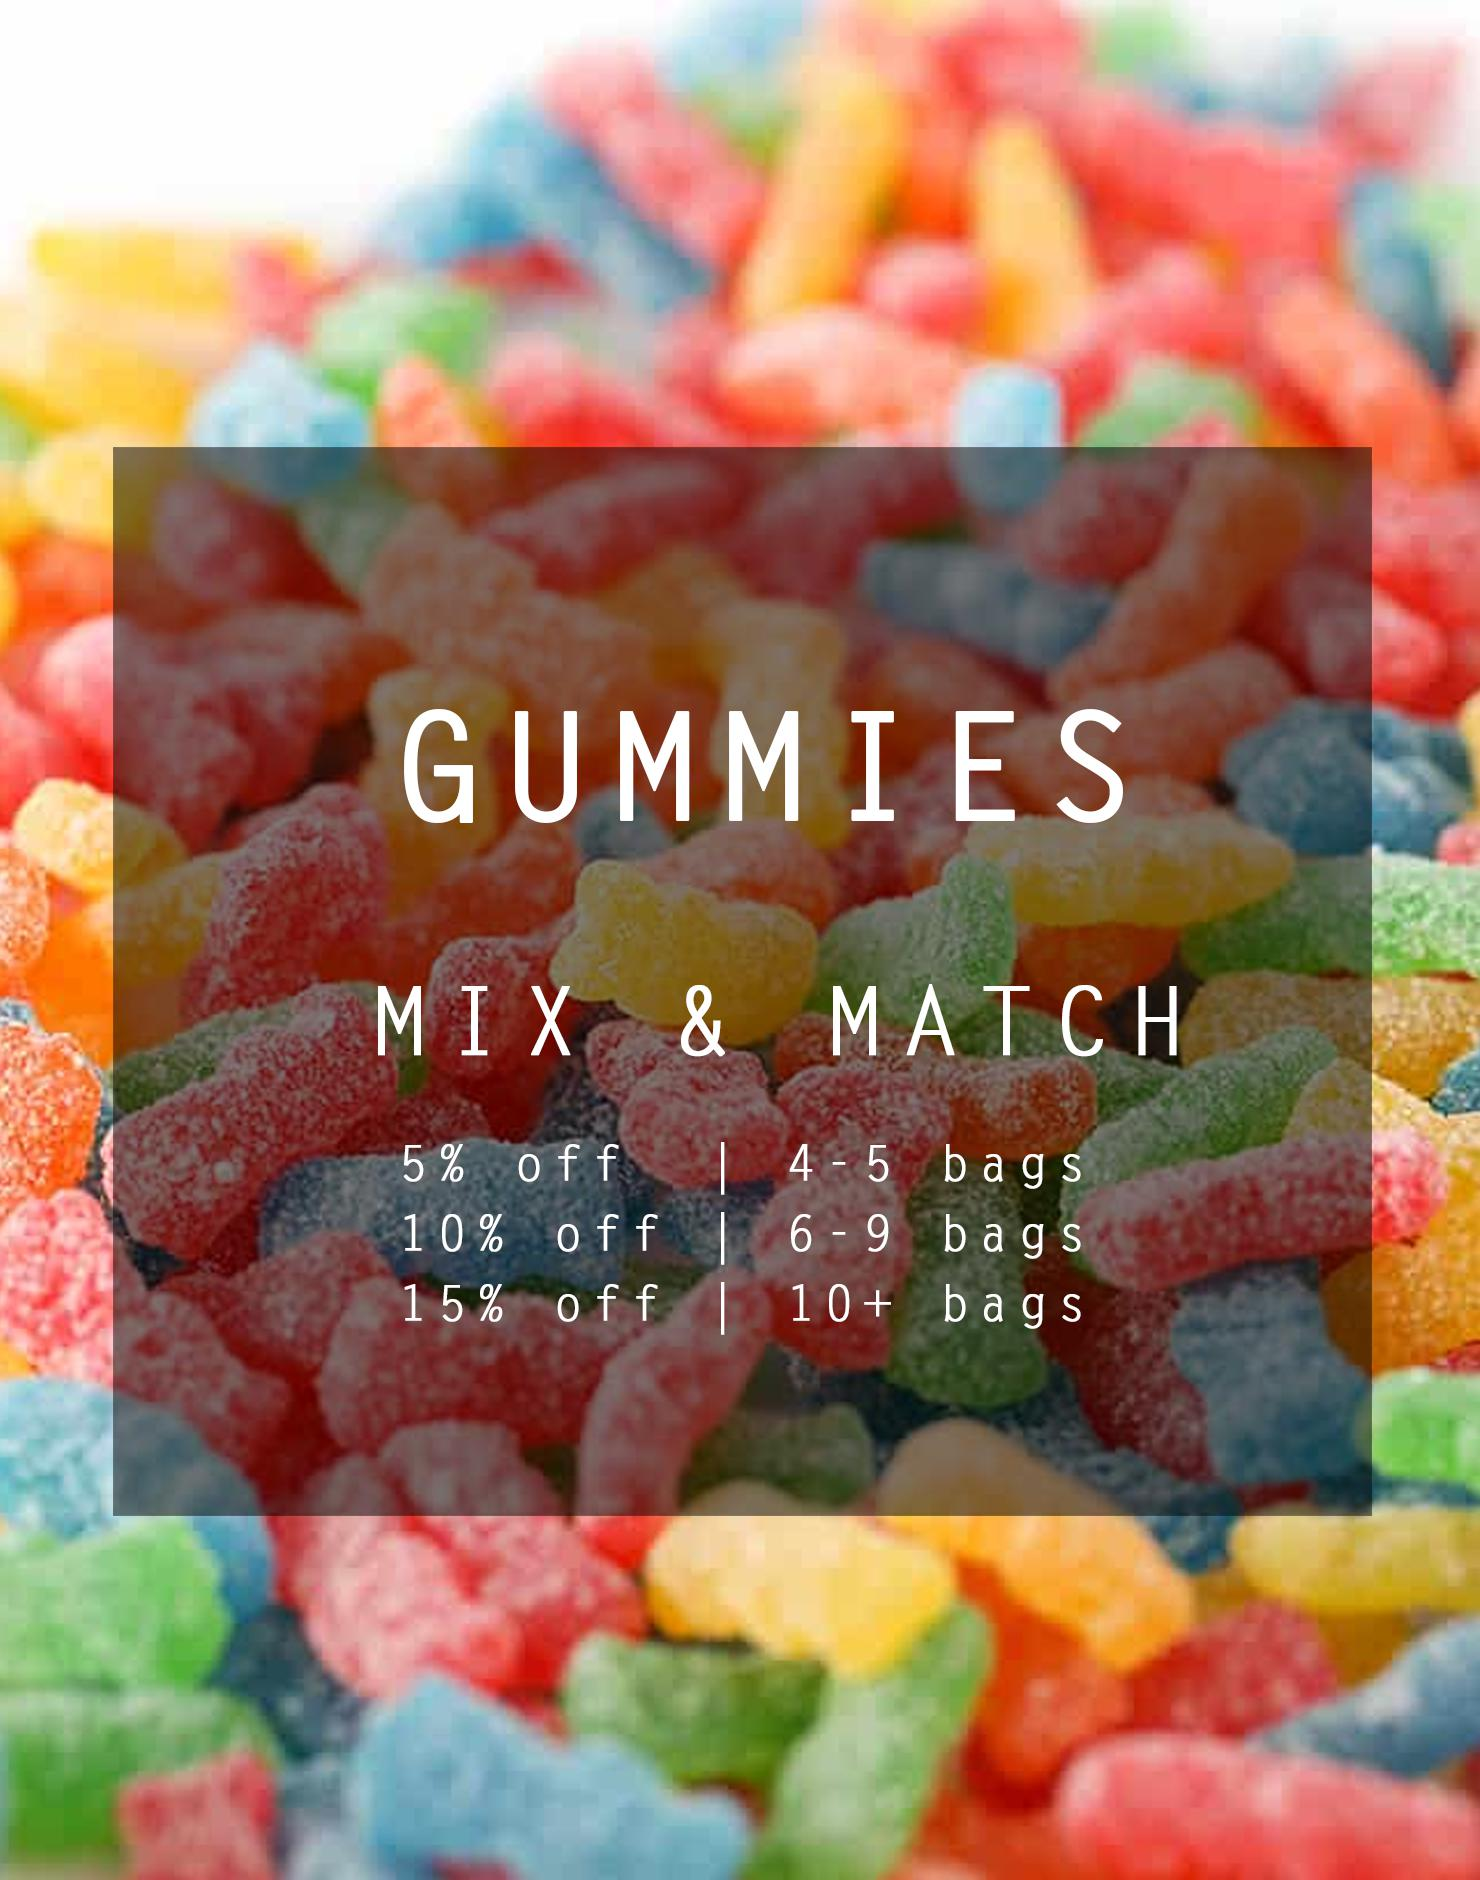 Gummies Bulk Mix & Match (6 Unique Flavours) by Ganja Grams - Image © 2018 Ganja Grams. All Rights Reserved.